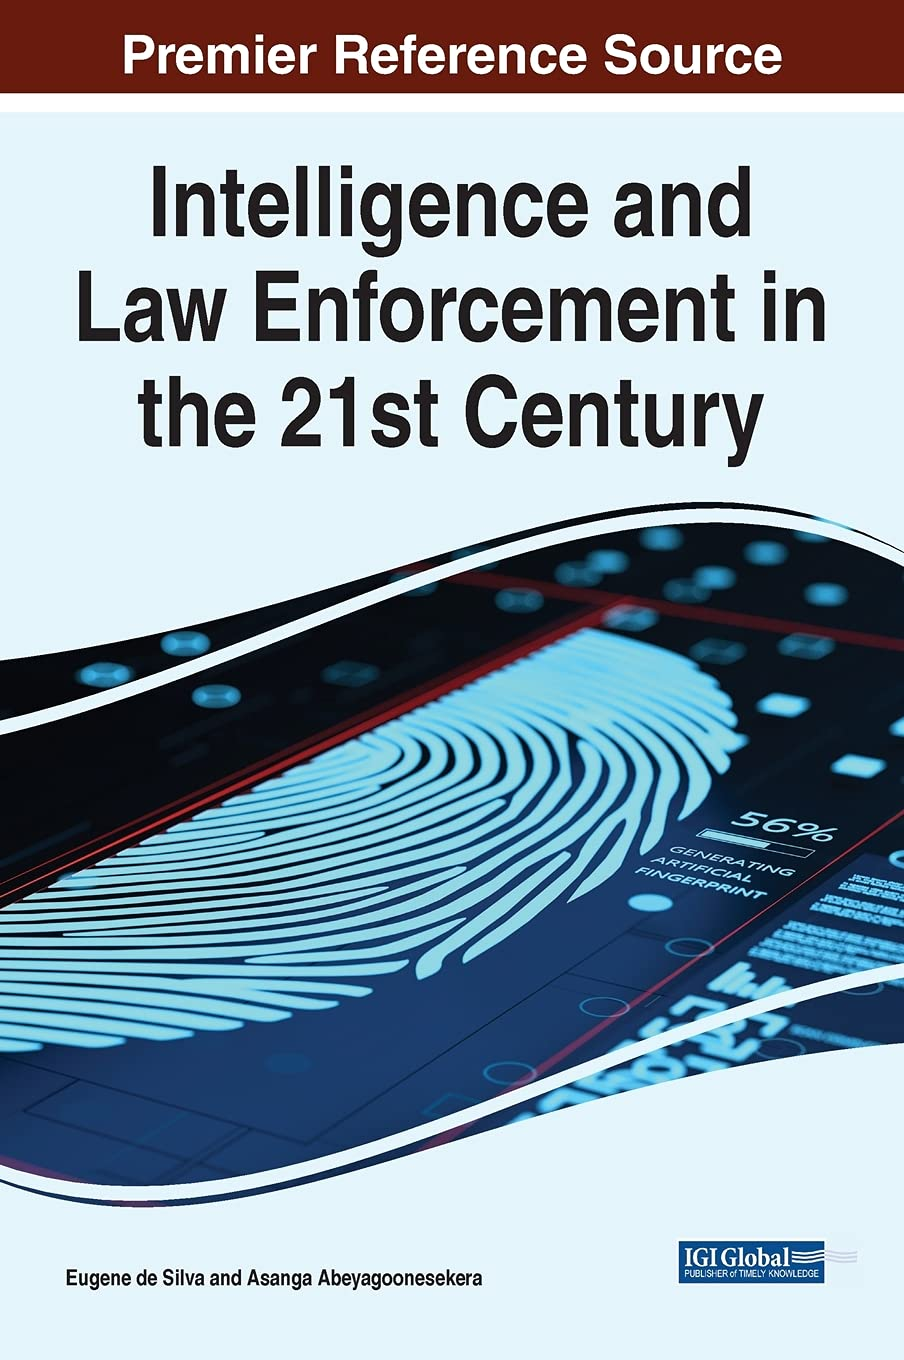 [#INTELLIGENCE] Livre: «Intelligence and Law Enforcement in the 21st Century» (2021)